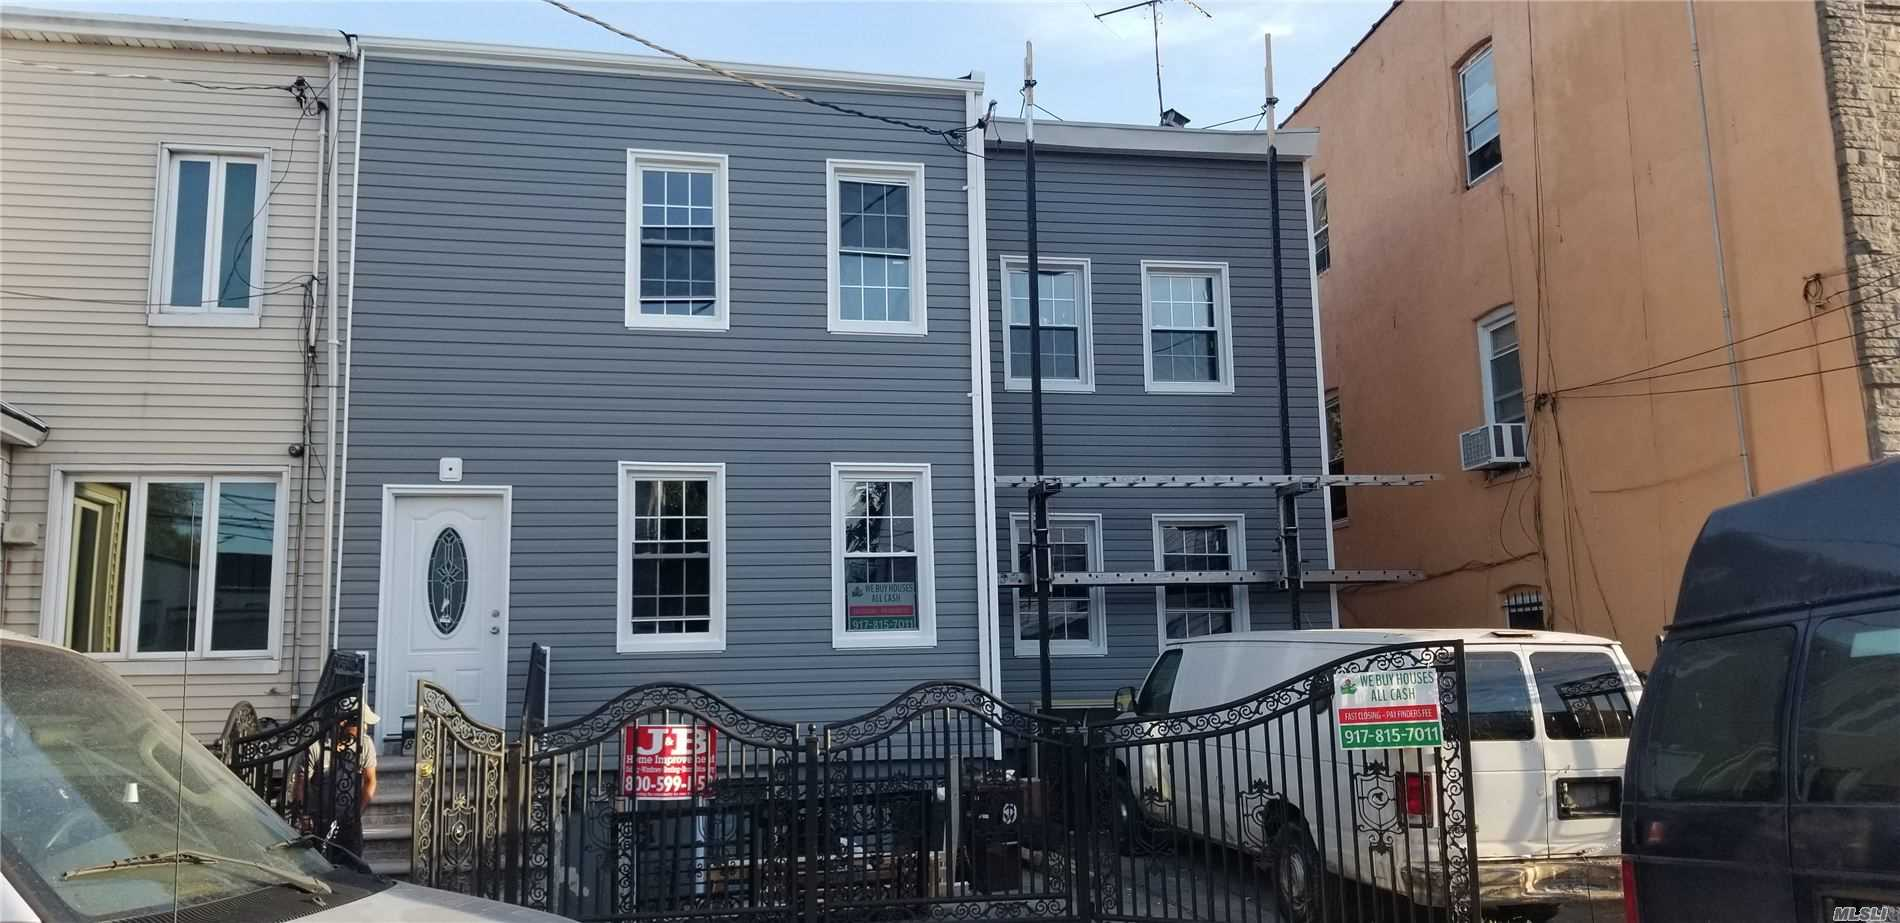 Property for sale at 84-10 95th Avenue, Ozone Park NY 11417, Ozone Park,  New York 11417